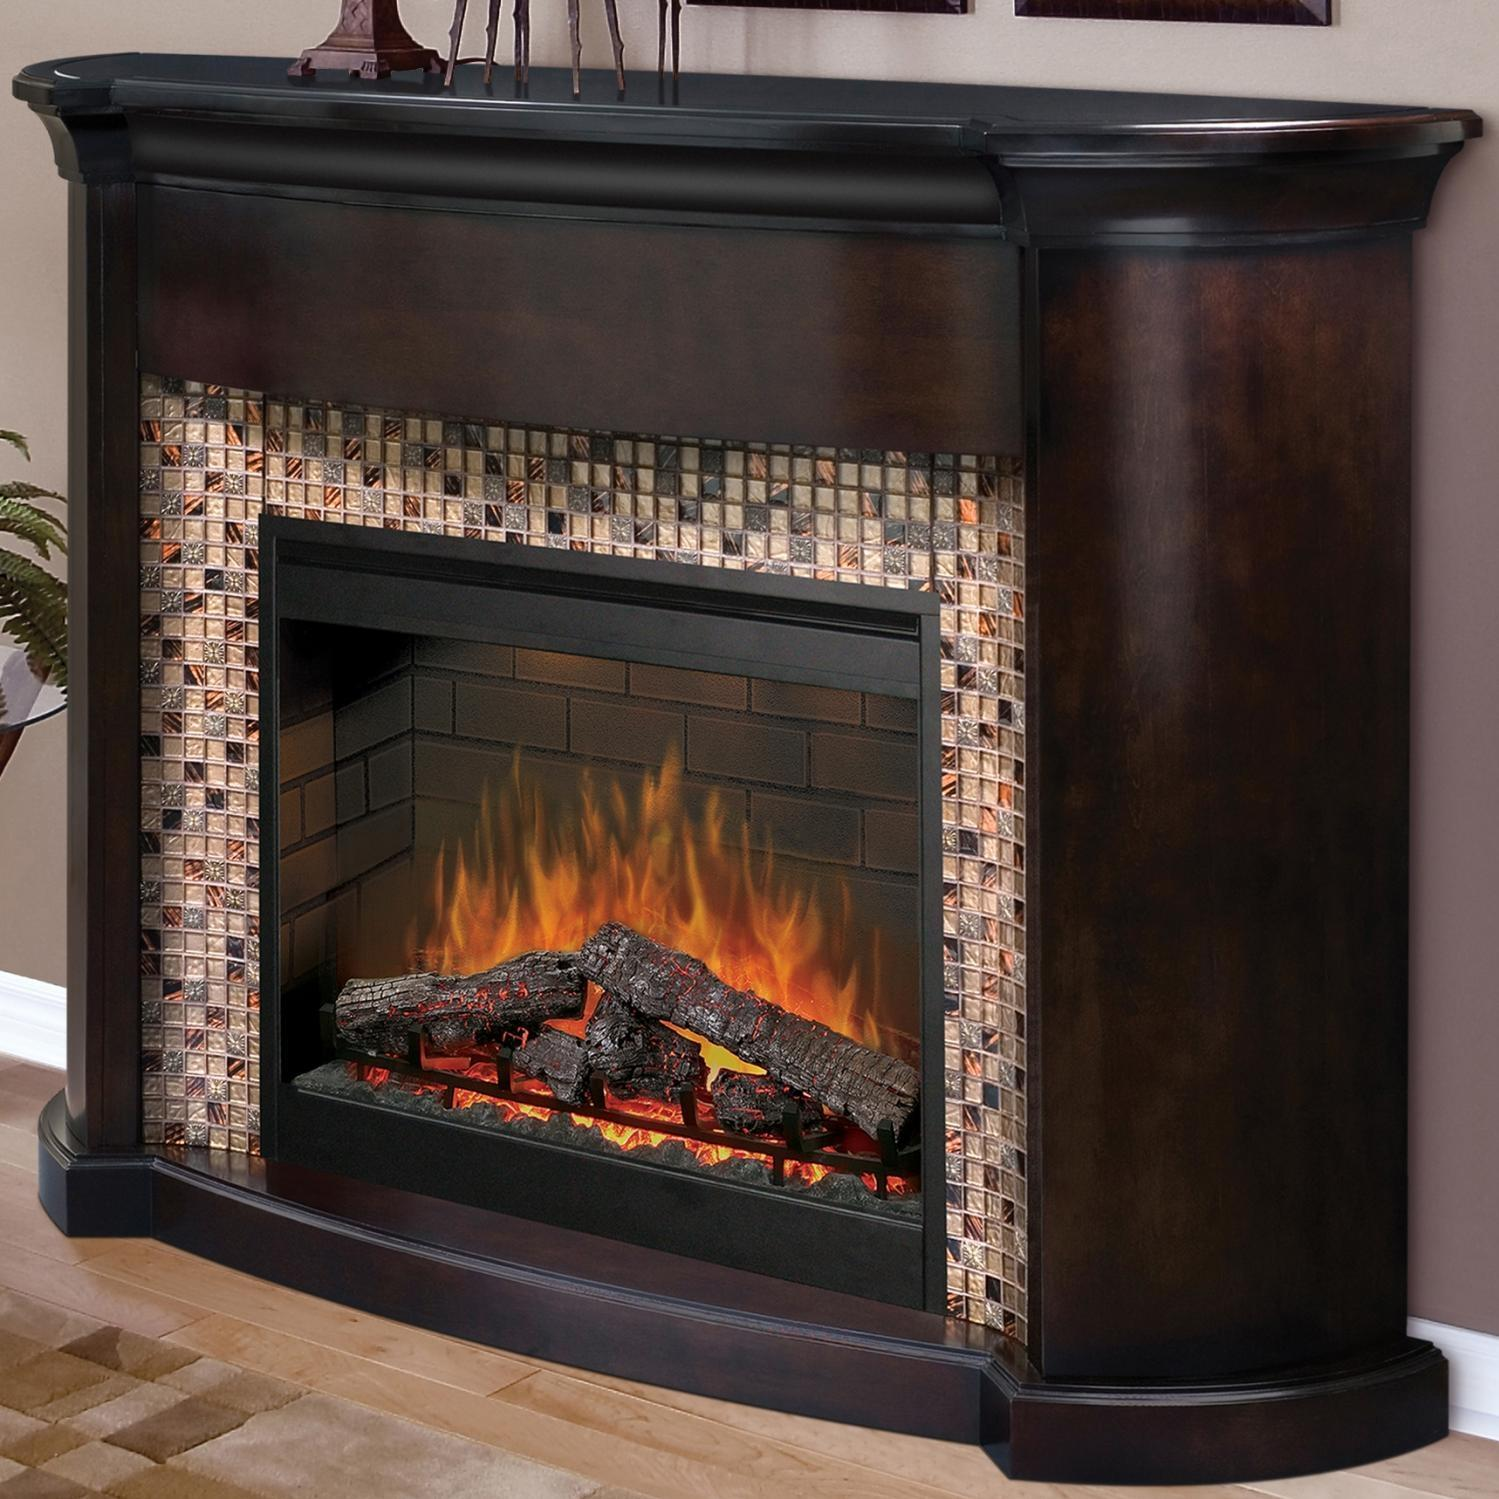 hight resolution of natural gas wall heater with thermostat wiring diagram natural gas fireplace wiring diagram natural gas fireplace